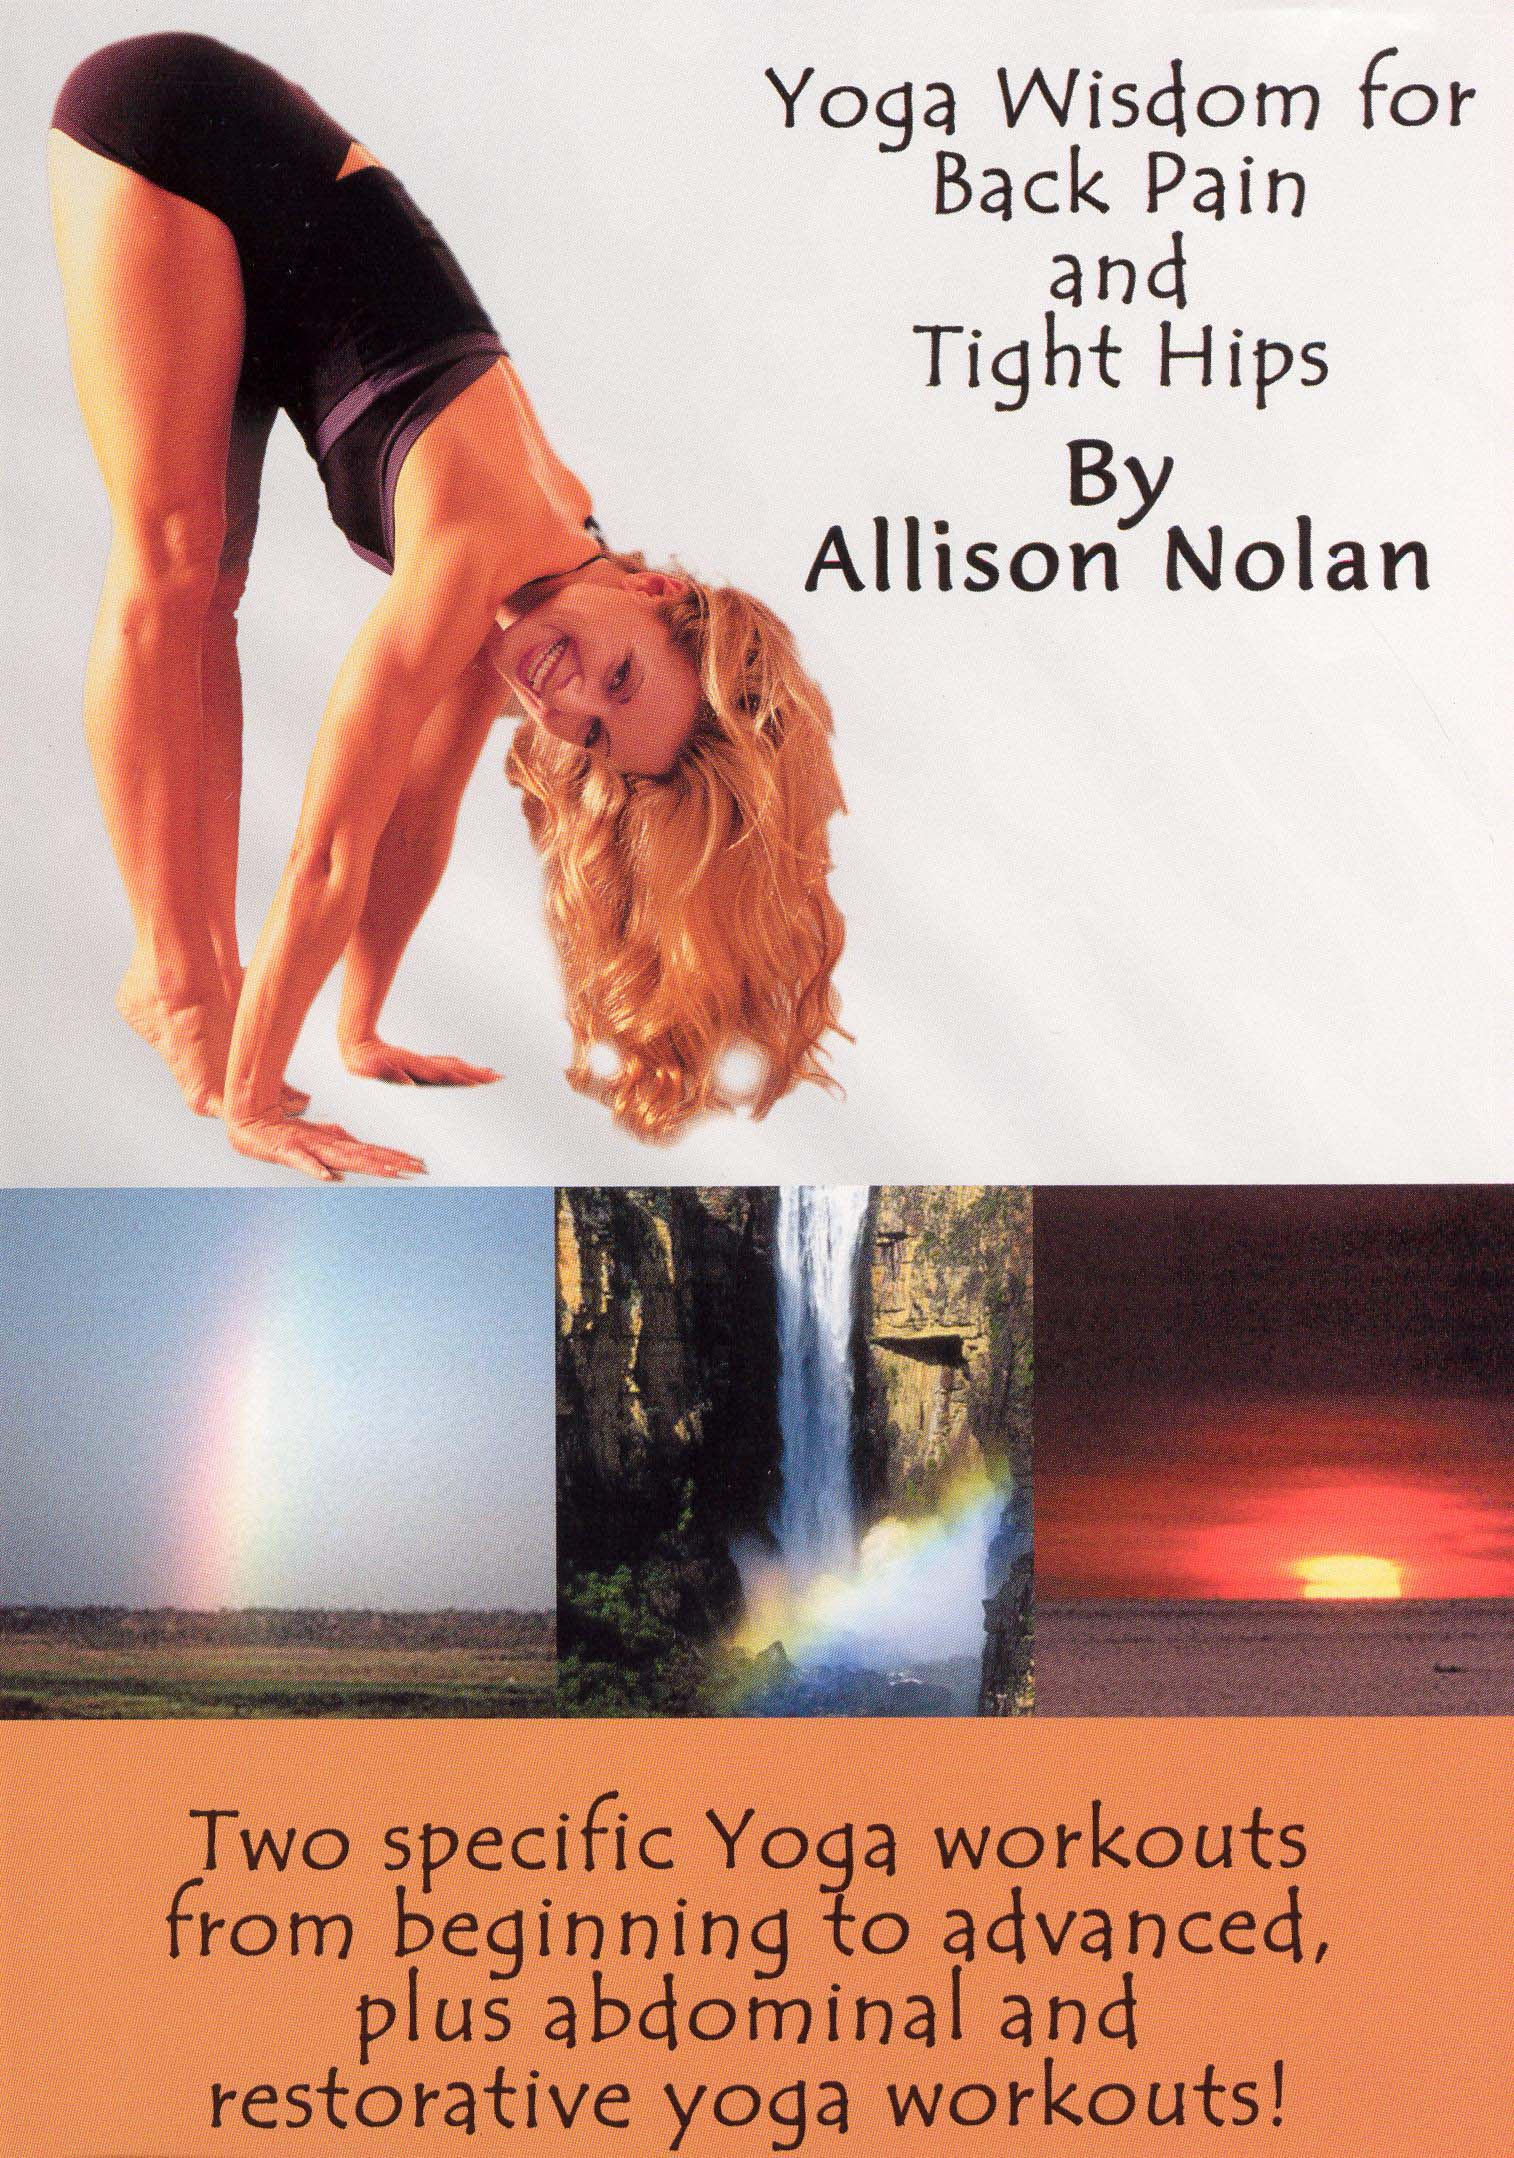 Yoga Wisdom for Back Pain and Tight Hips